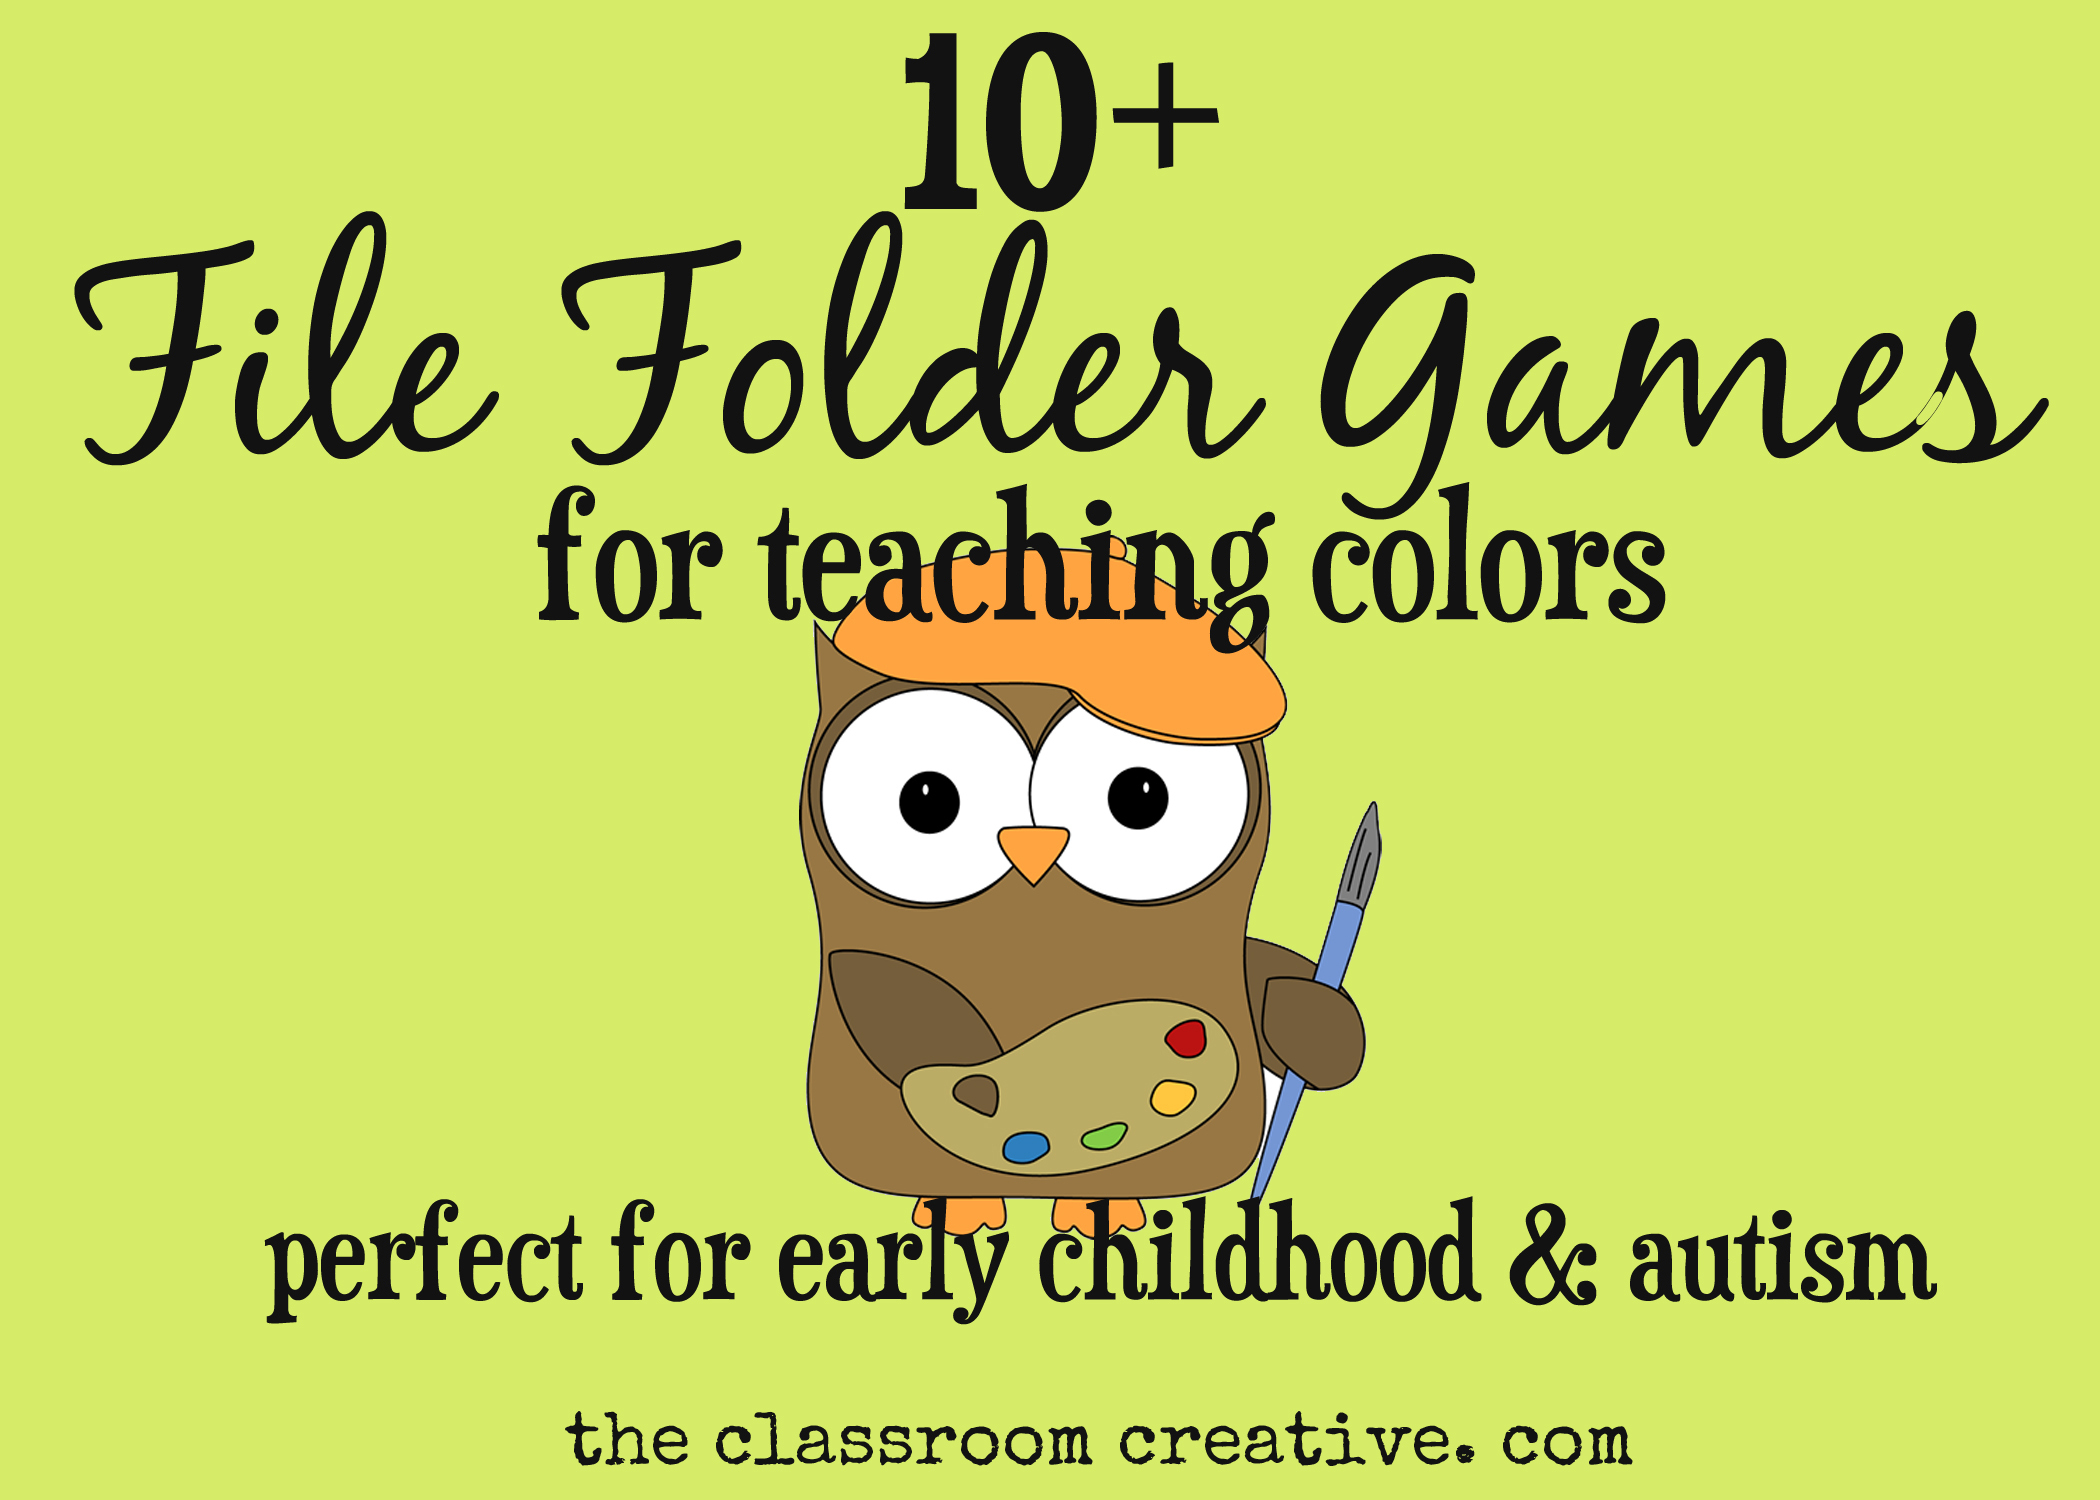 File Folder Games For Teaching Colors - Free Printable Math File Folder Games For Preschoolers